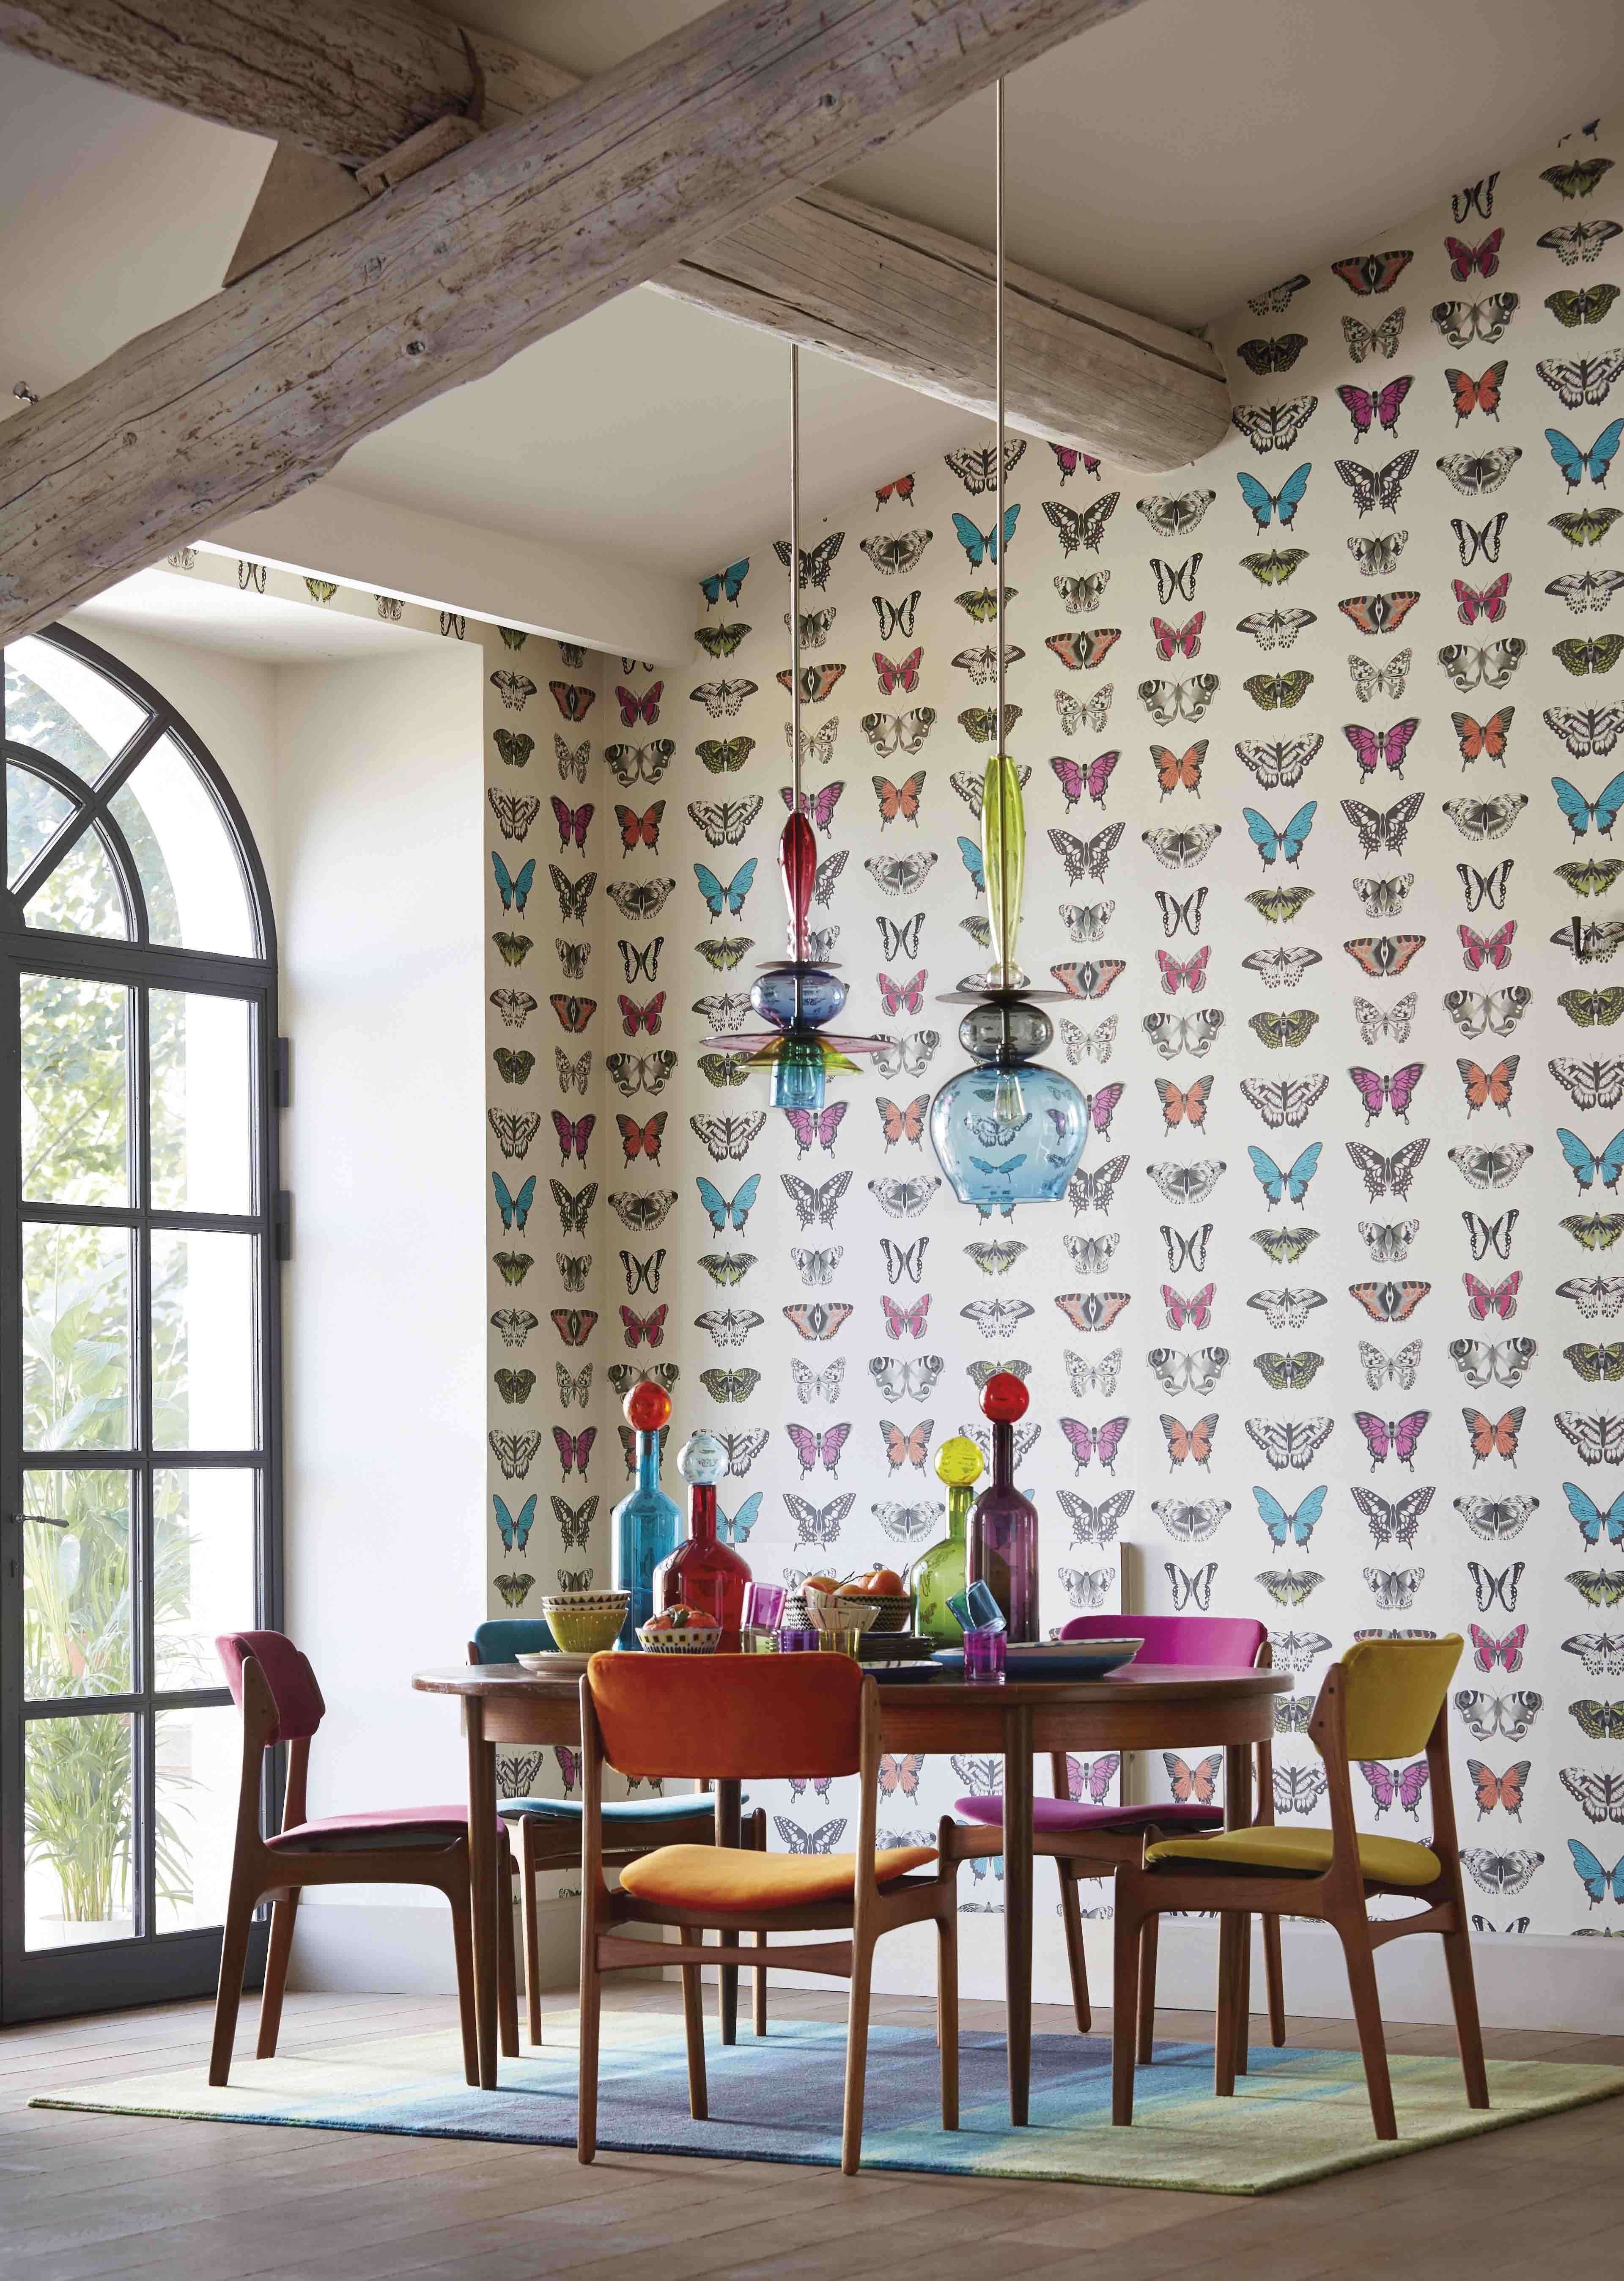 Harlequinus papilio wallpaper from the amazilia collection features